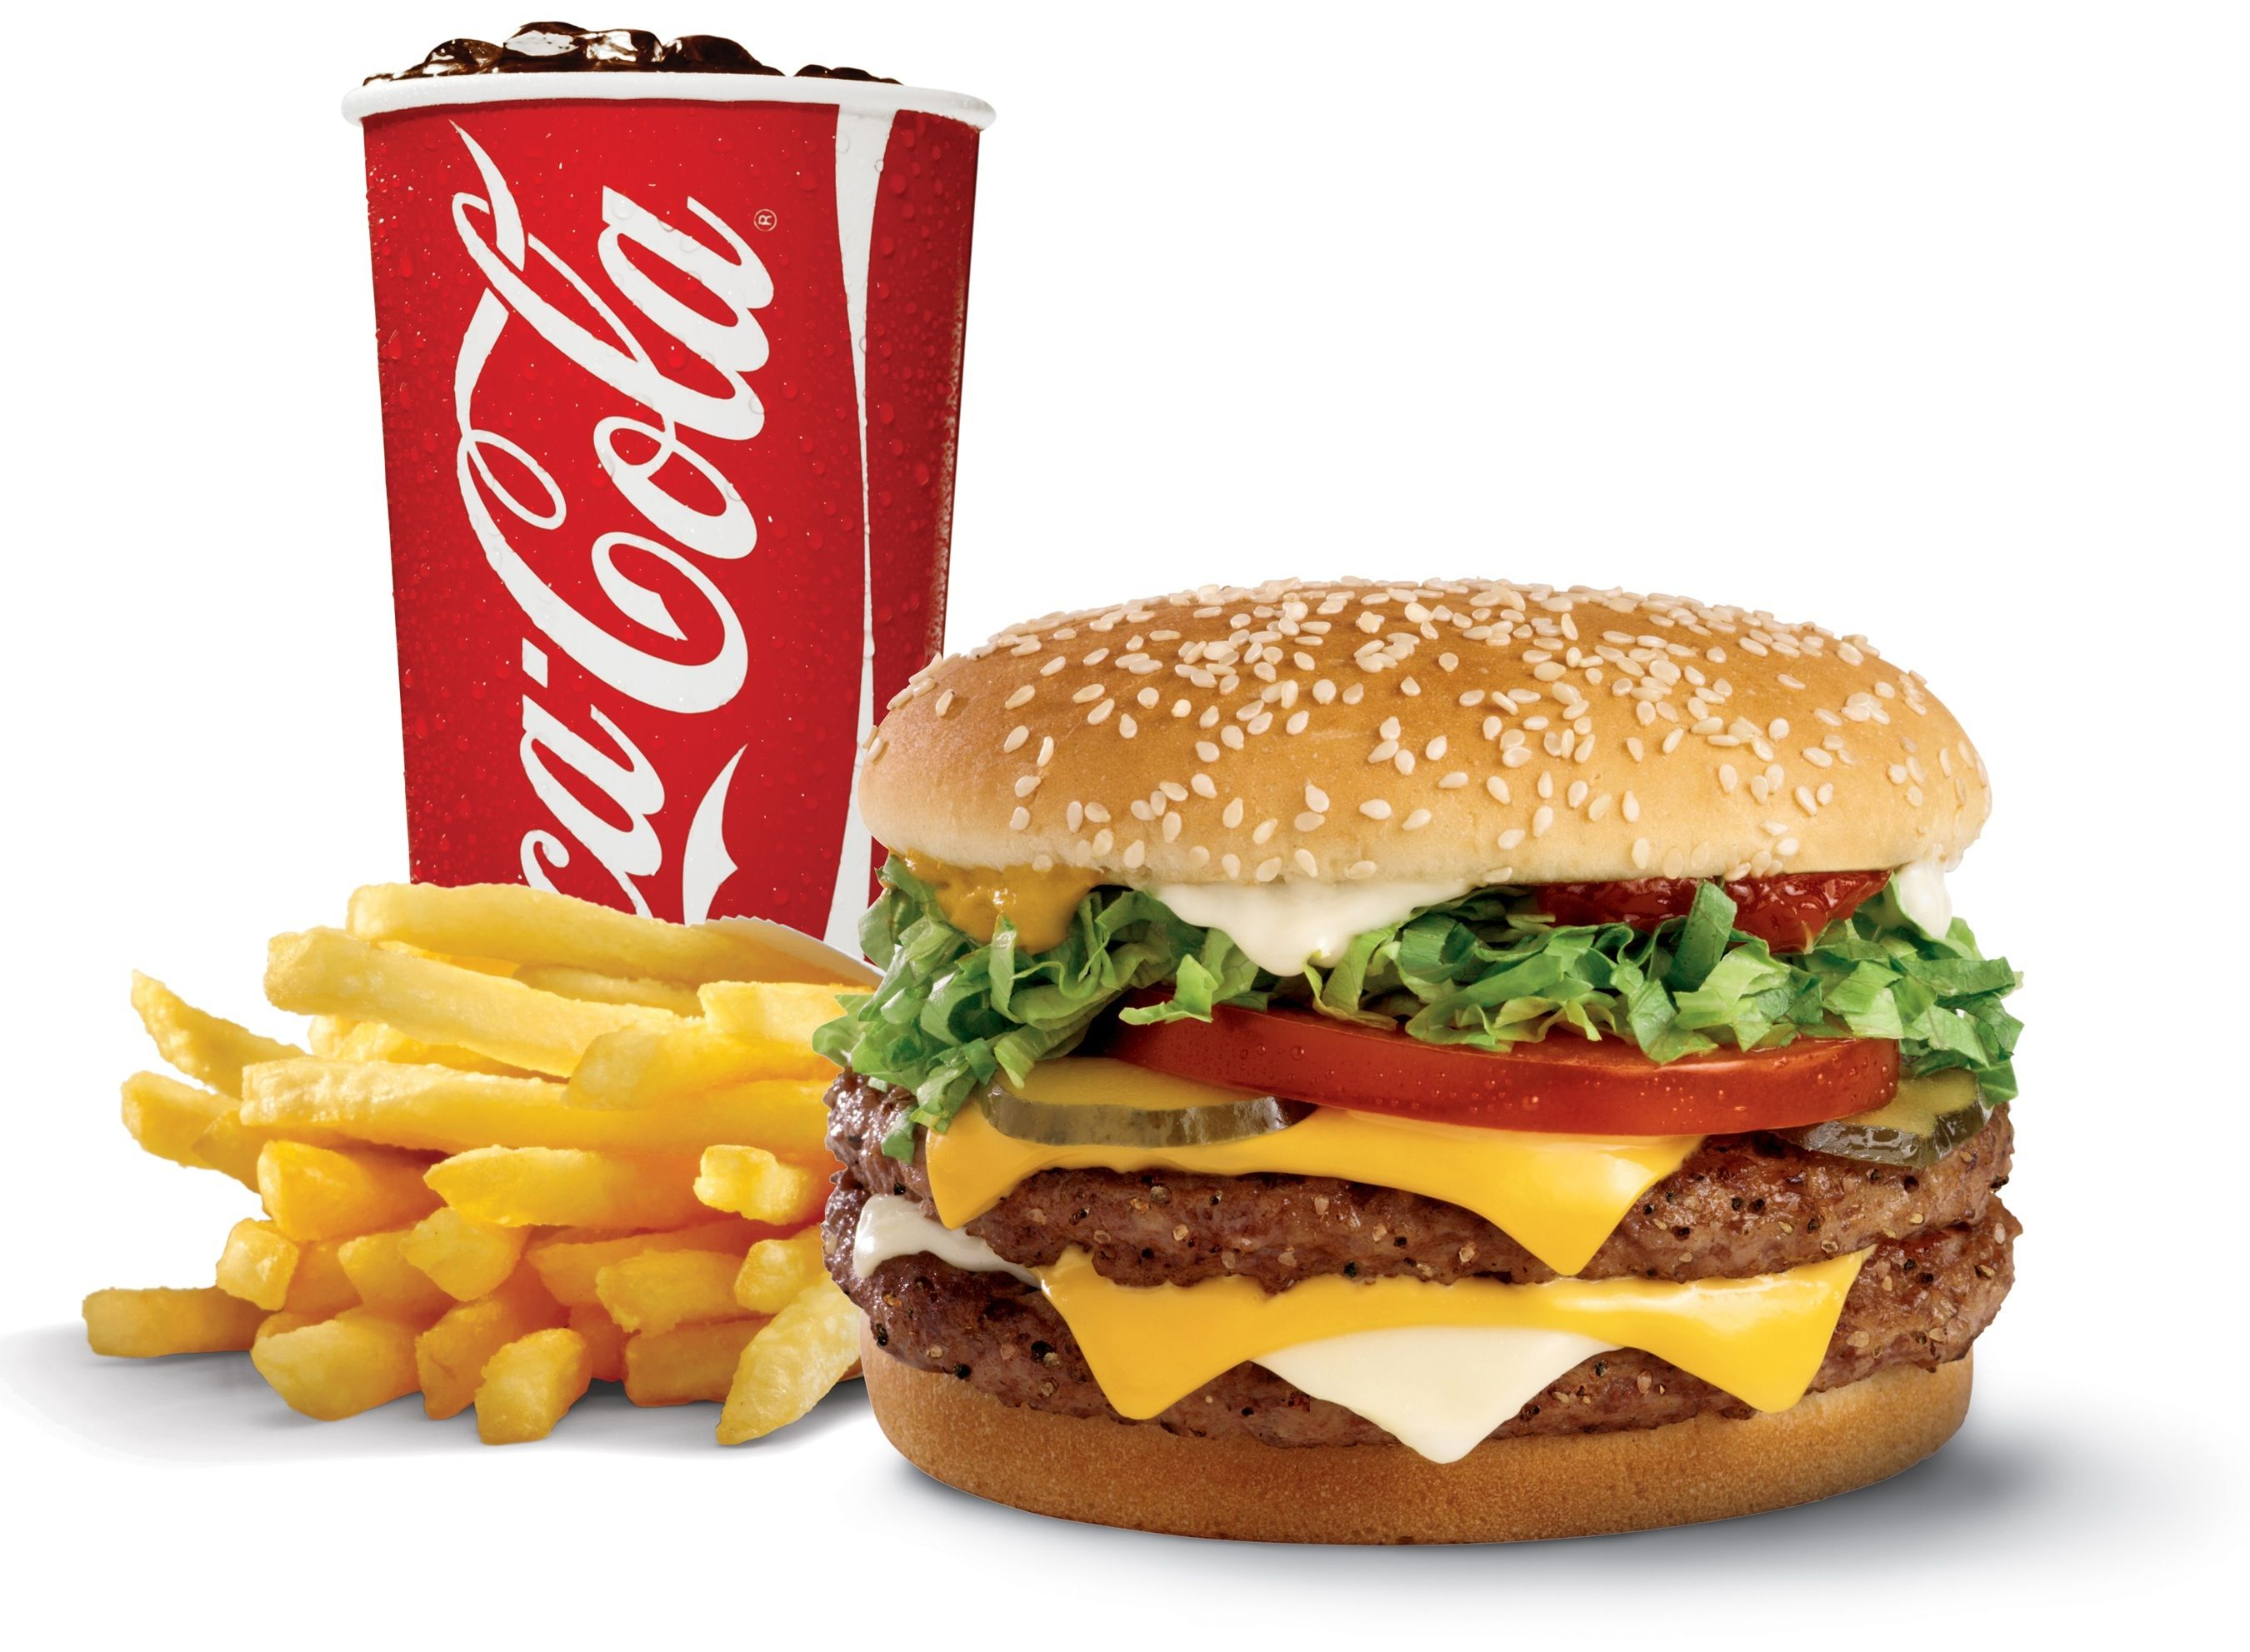 Veg burgers supplier in chennai veggie burger suppliers for Burger de